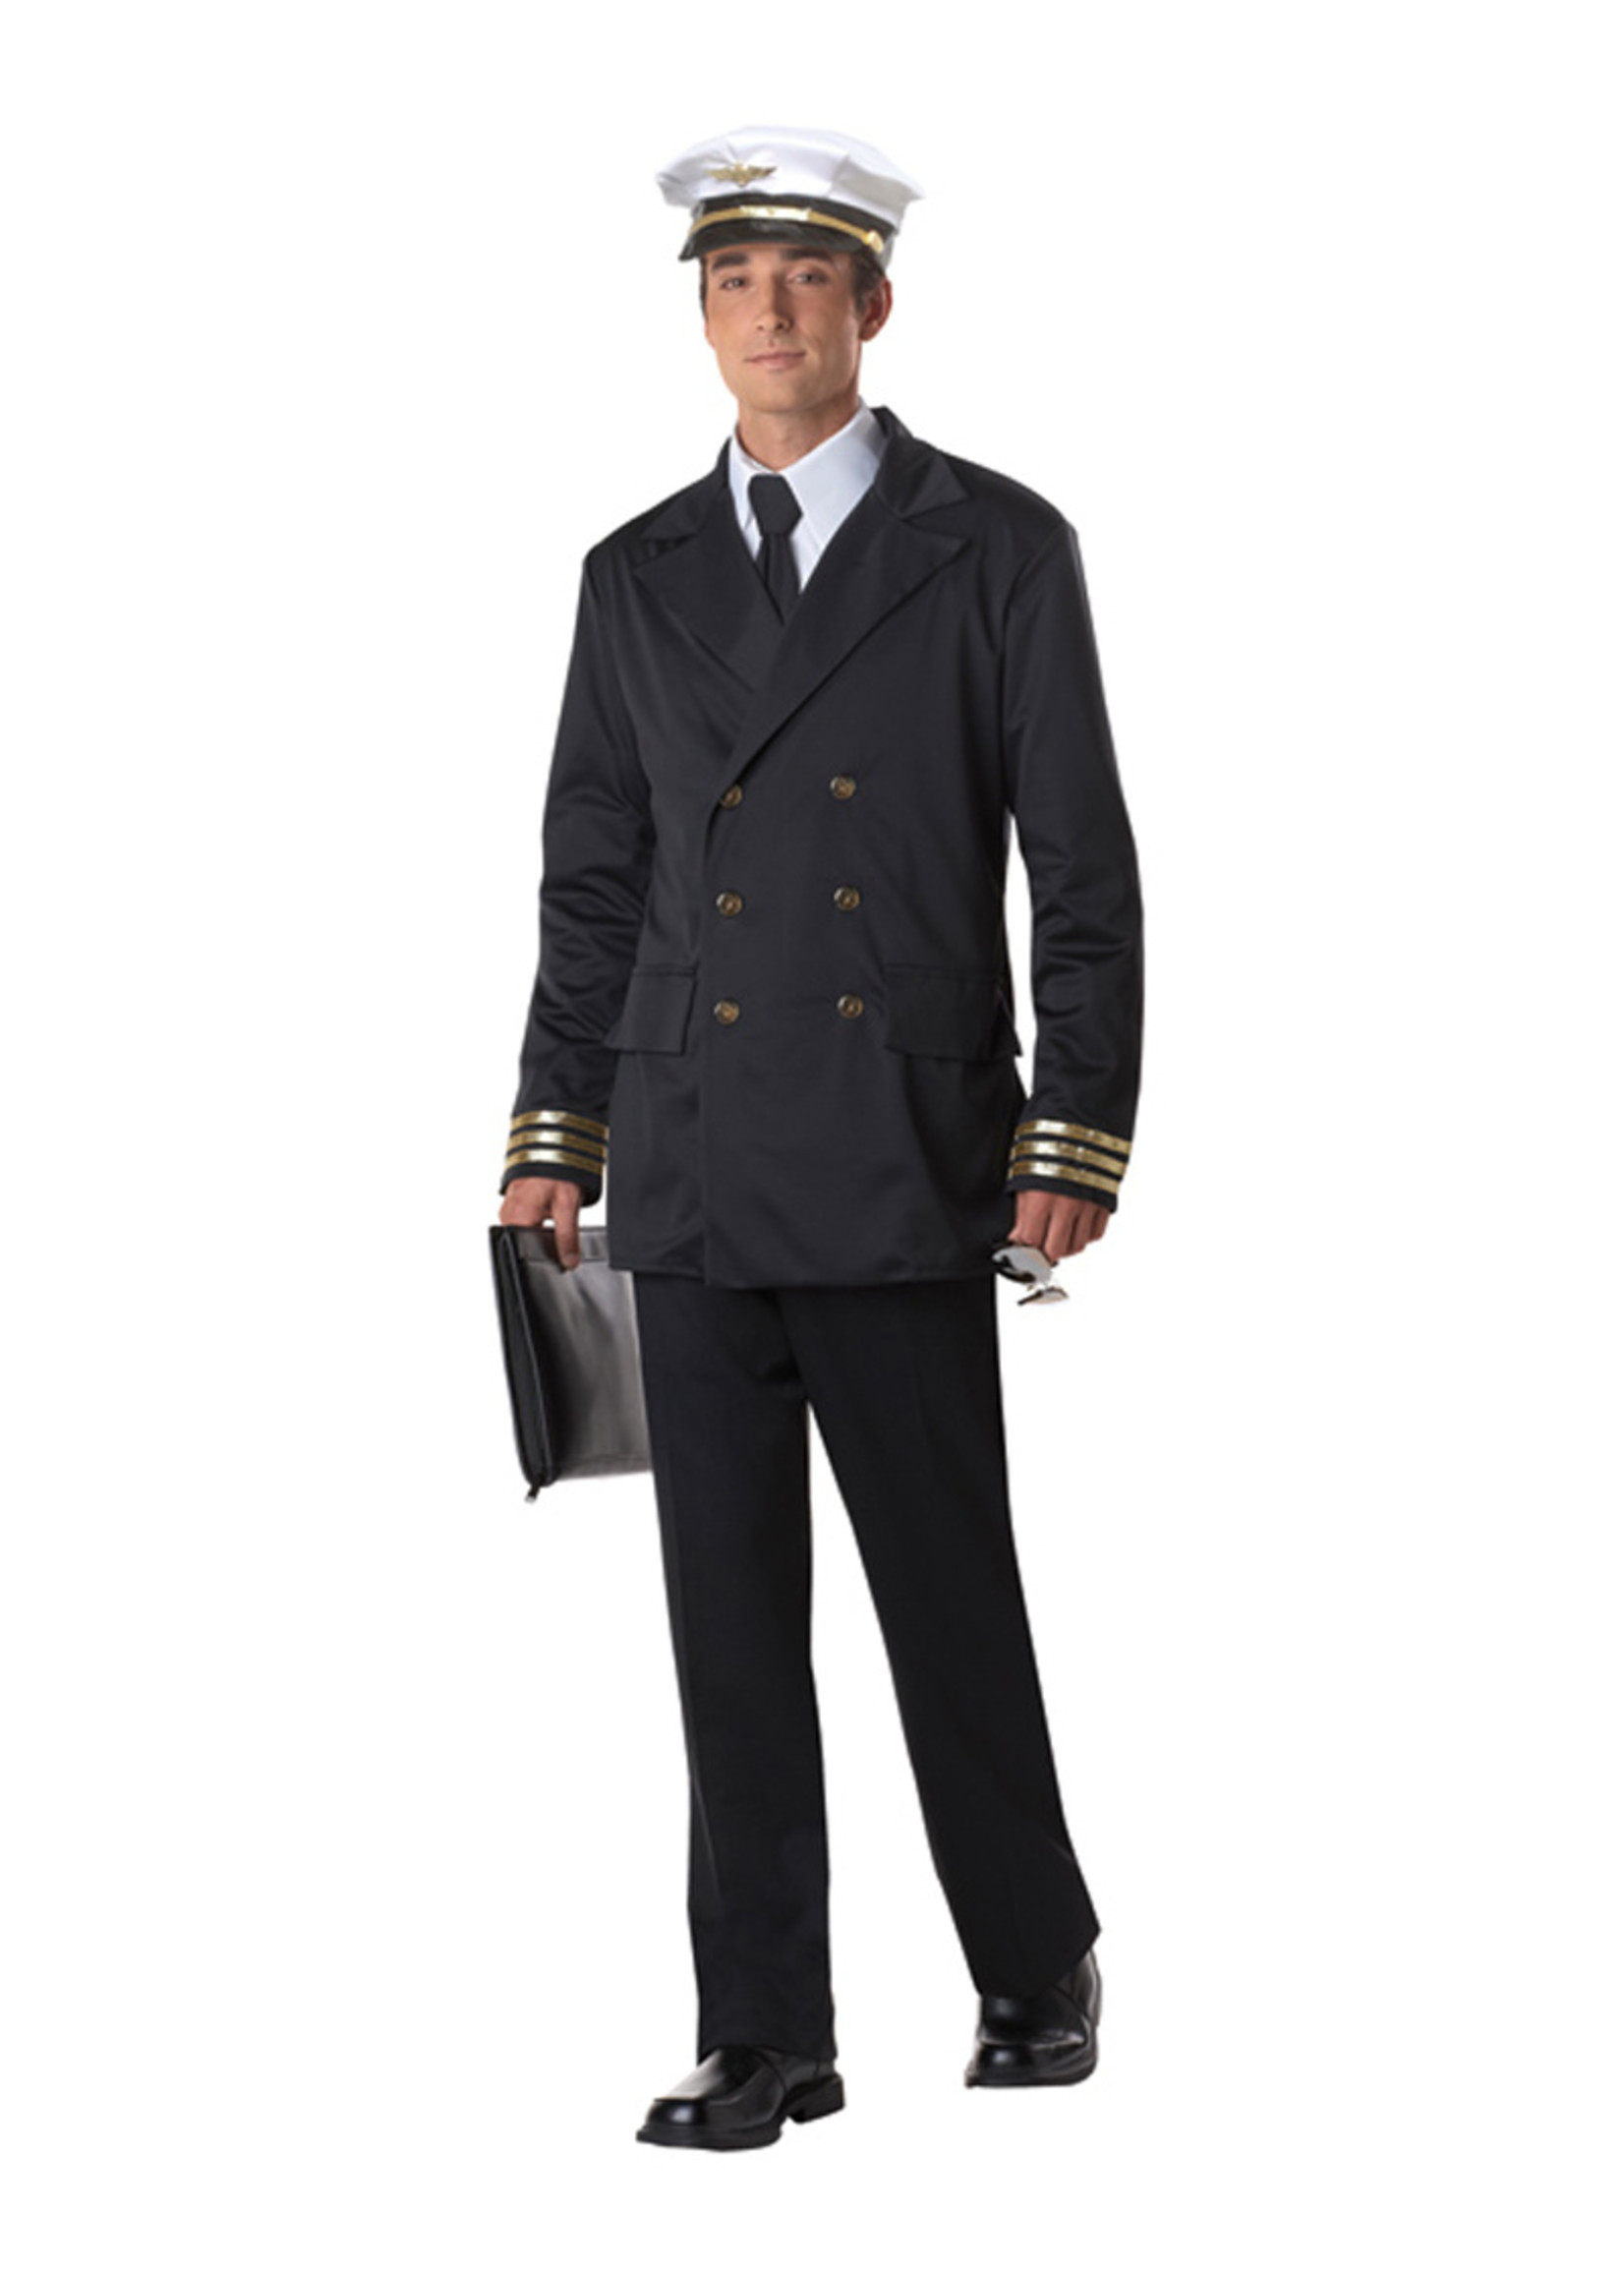 Retro Pilot Costume - Men's